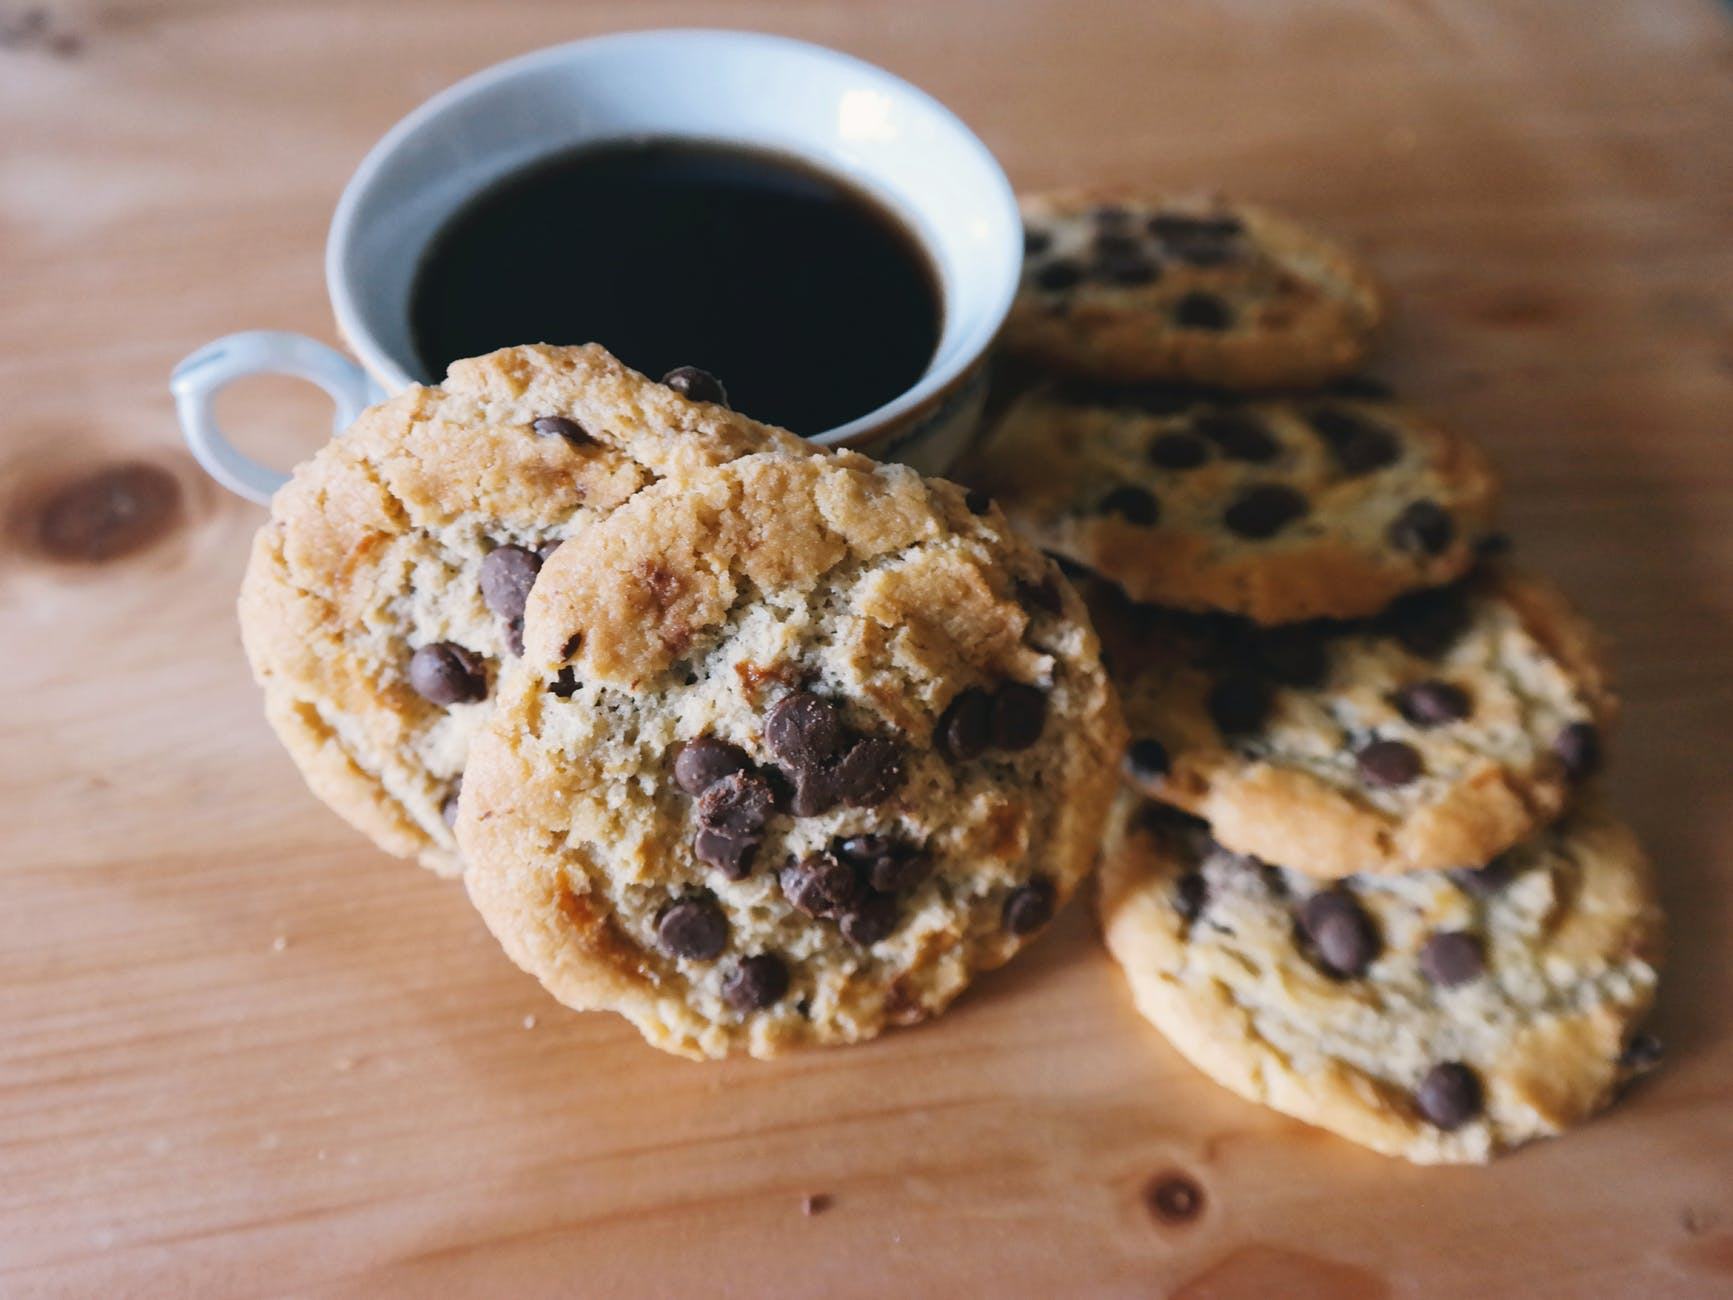 half dozen chocolate chip cookies on wooden table with black coffee in a cup